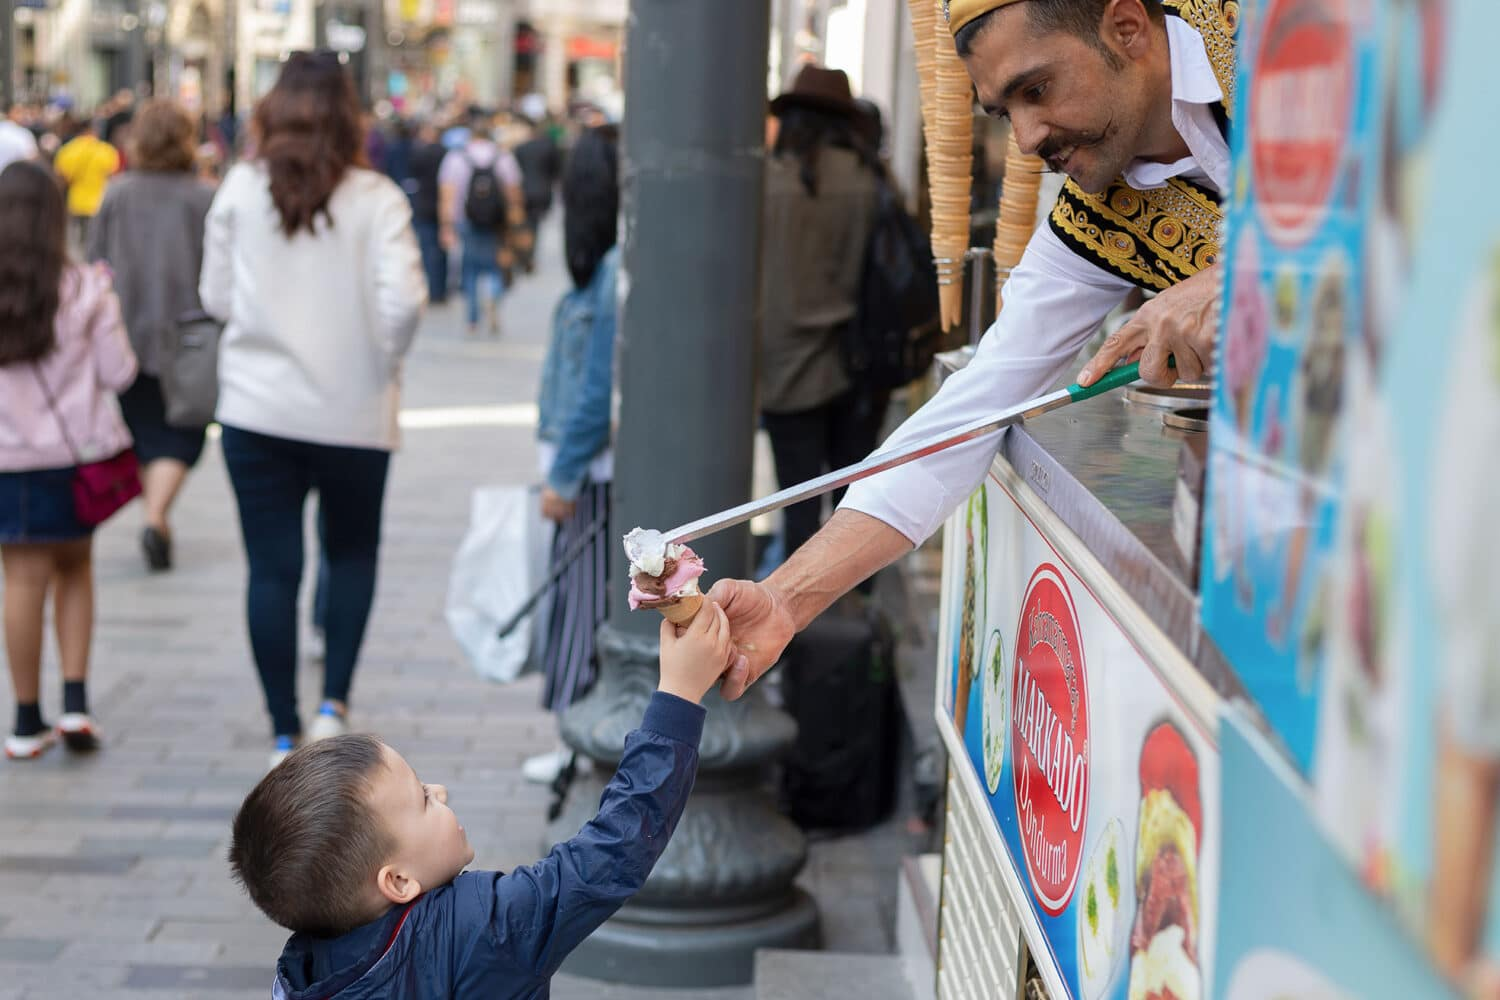 Tour Photos Kid Getting Ice Cream from Street Vendor in Istanbul